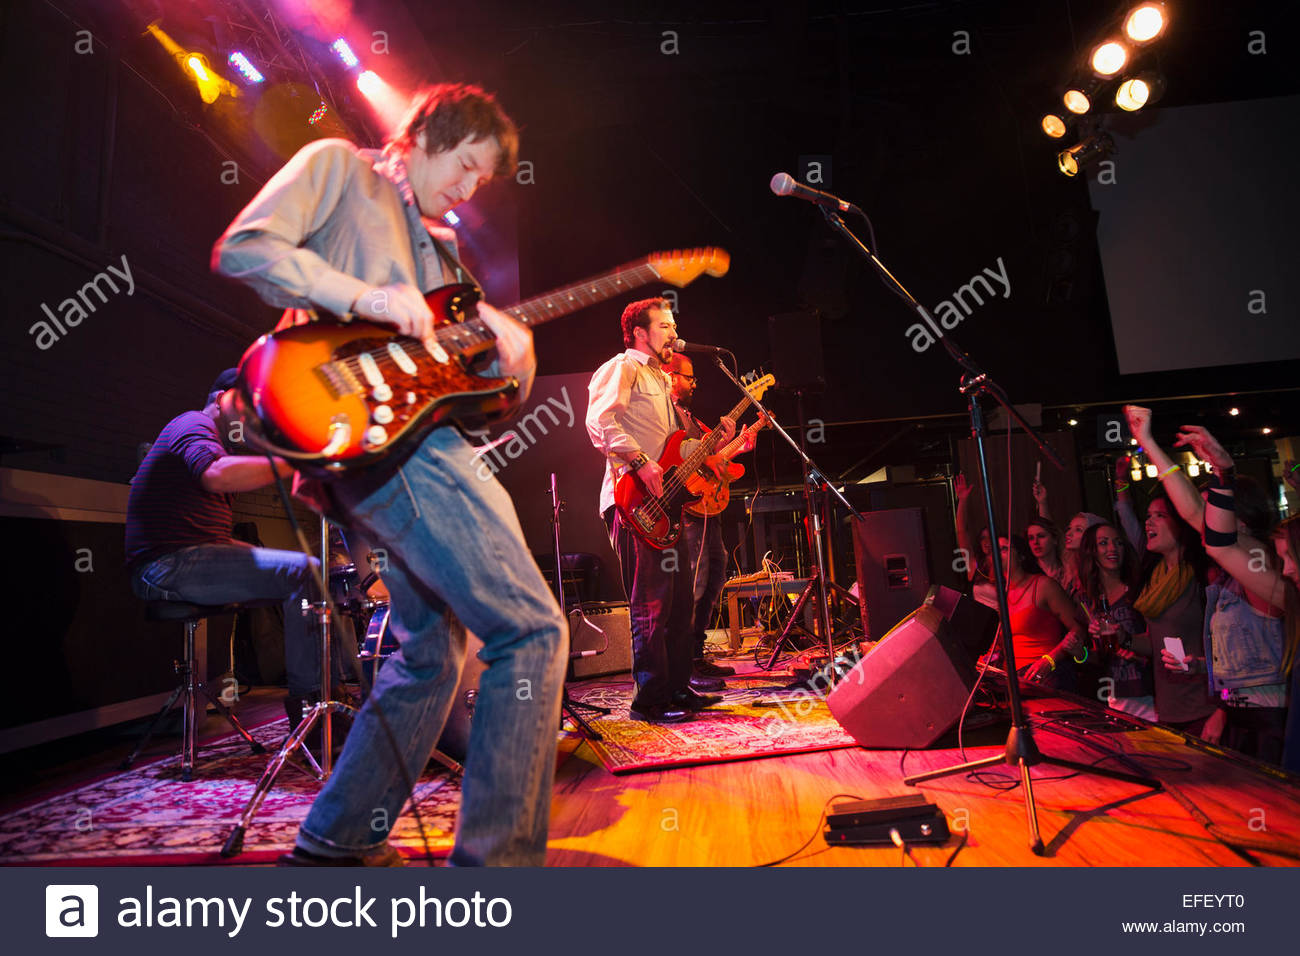 Musicians performing on stage at concert - Stock Image